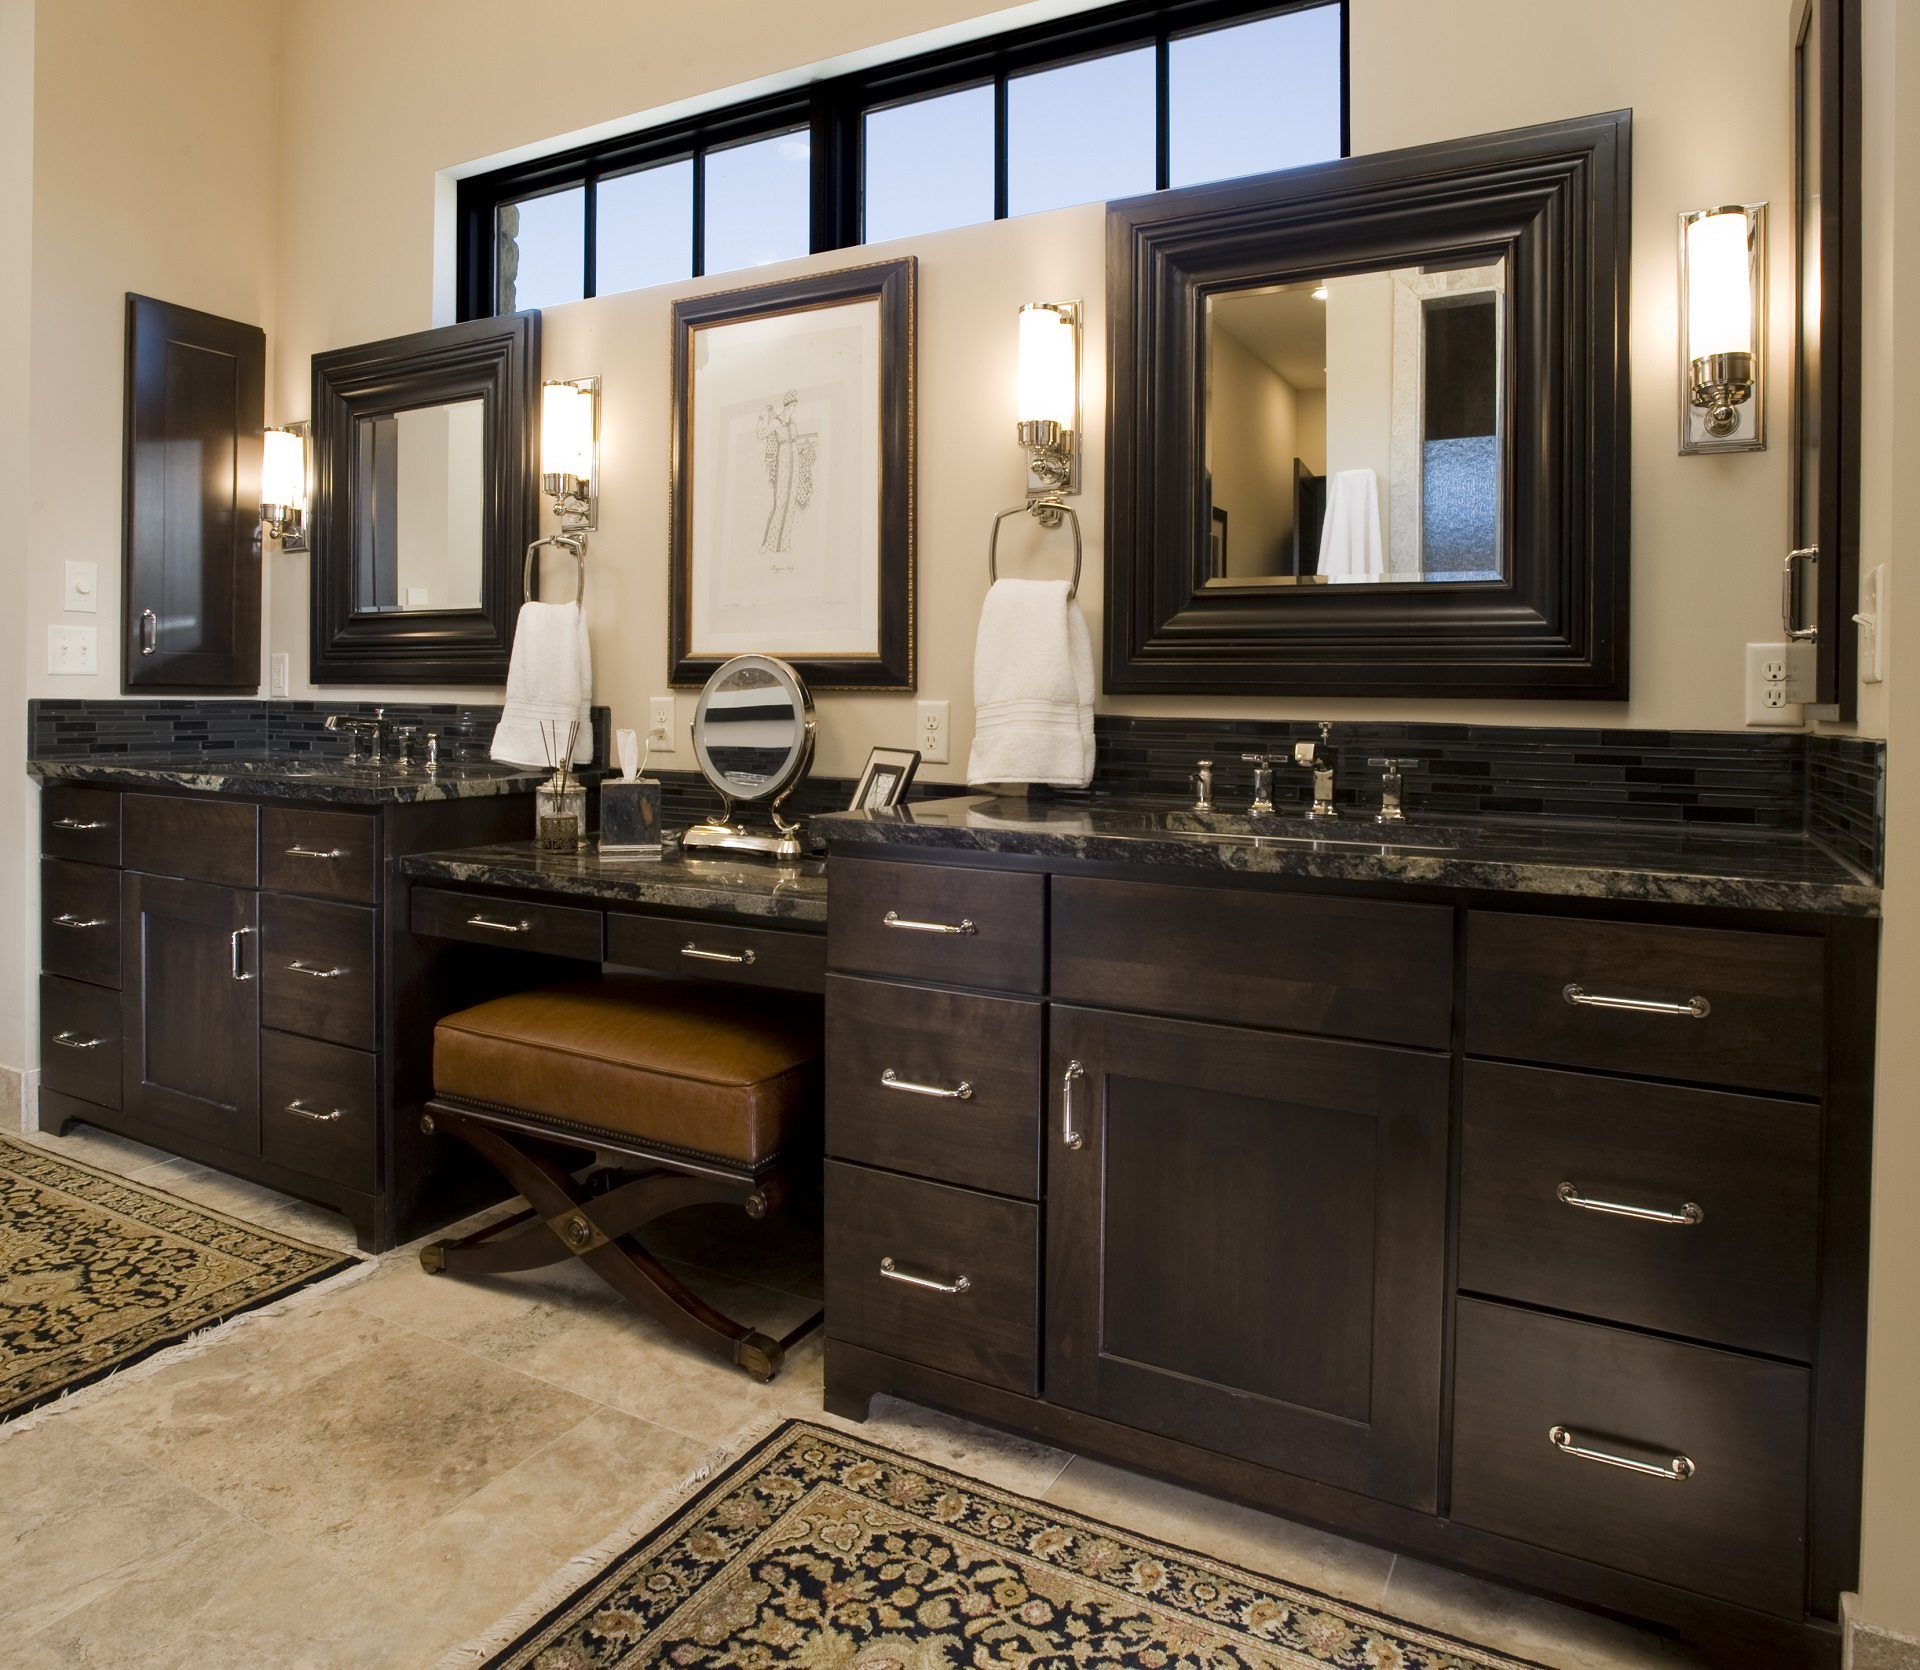 Buying Cabinets, Cabinet Care, Cabinet Cleaning, Cabinetry 101, colors, Company Culture, Company Events, Custom vs Local Shop, design, Design Ideas, Giving Back, KBIS 2020, Laundry Rooms, Paint, Painted Cabinets, Small Bathrooms, Small Kitchen Ideas, Small Kitchens, Storage Solutions, trends